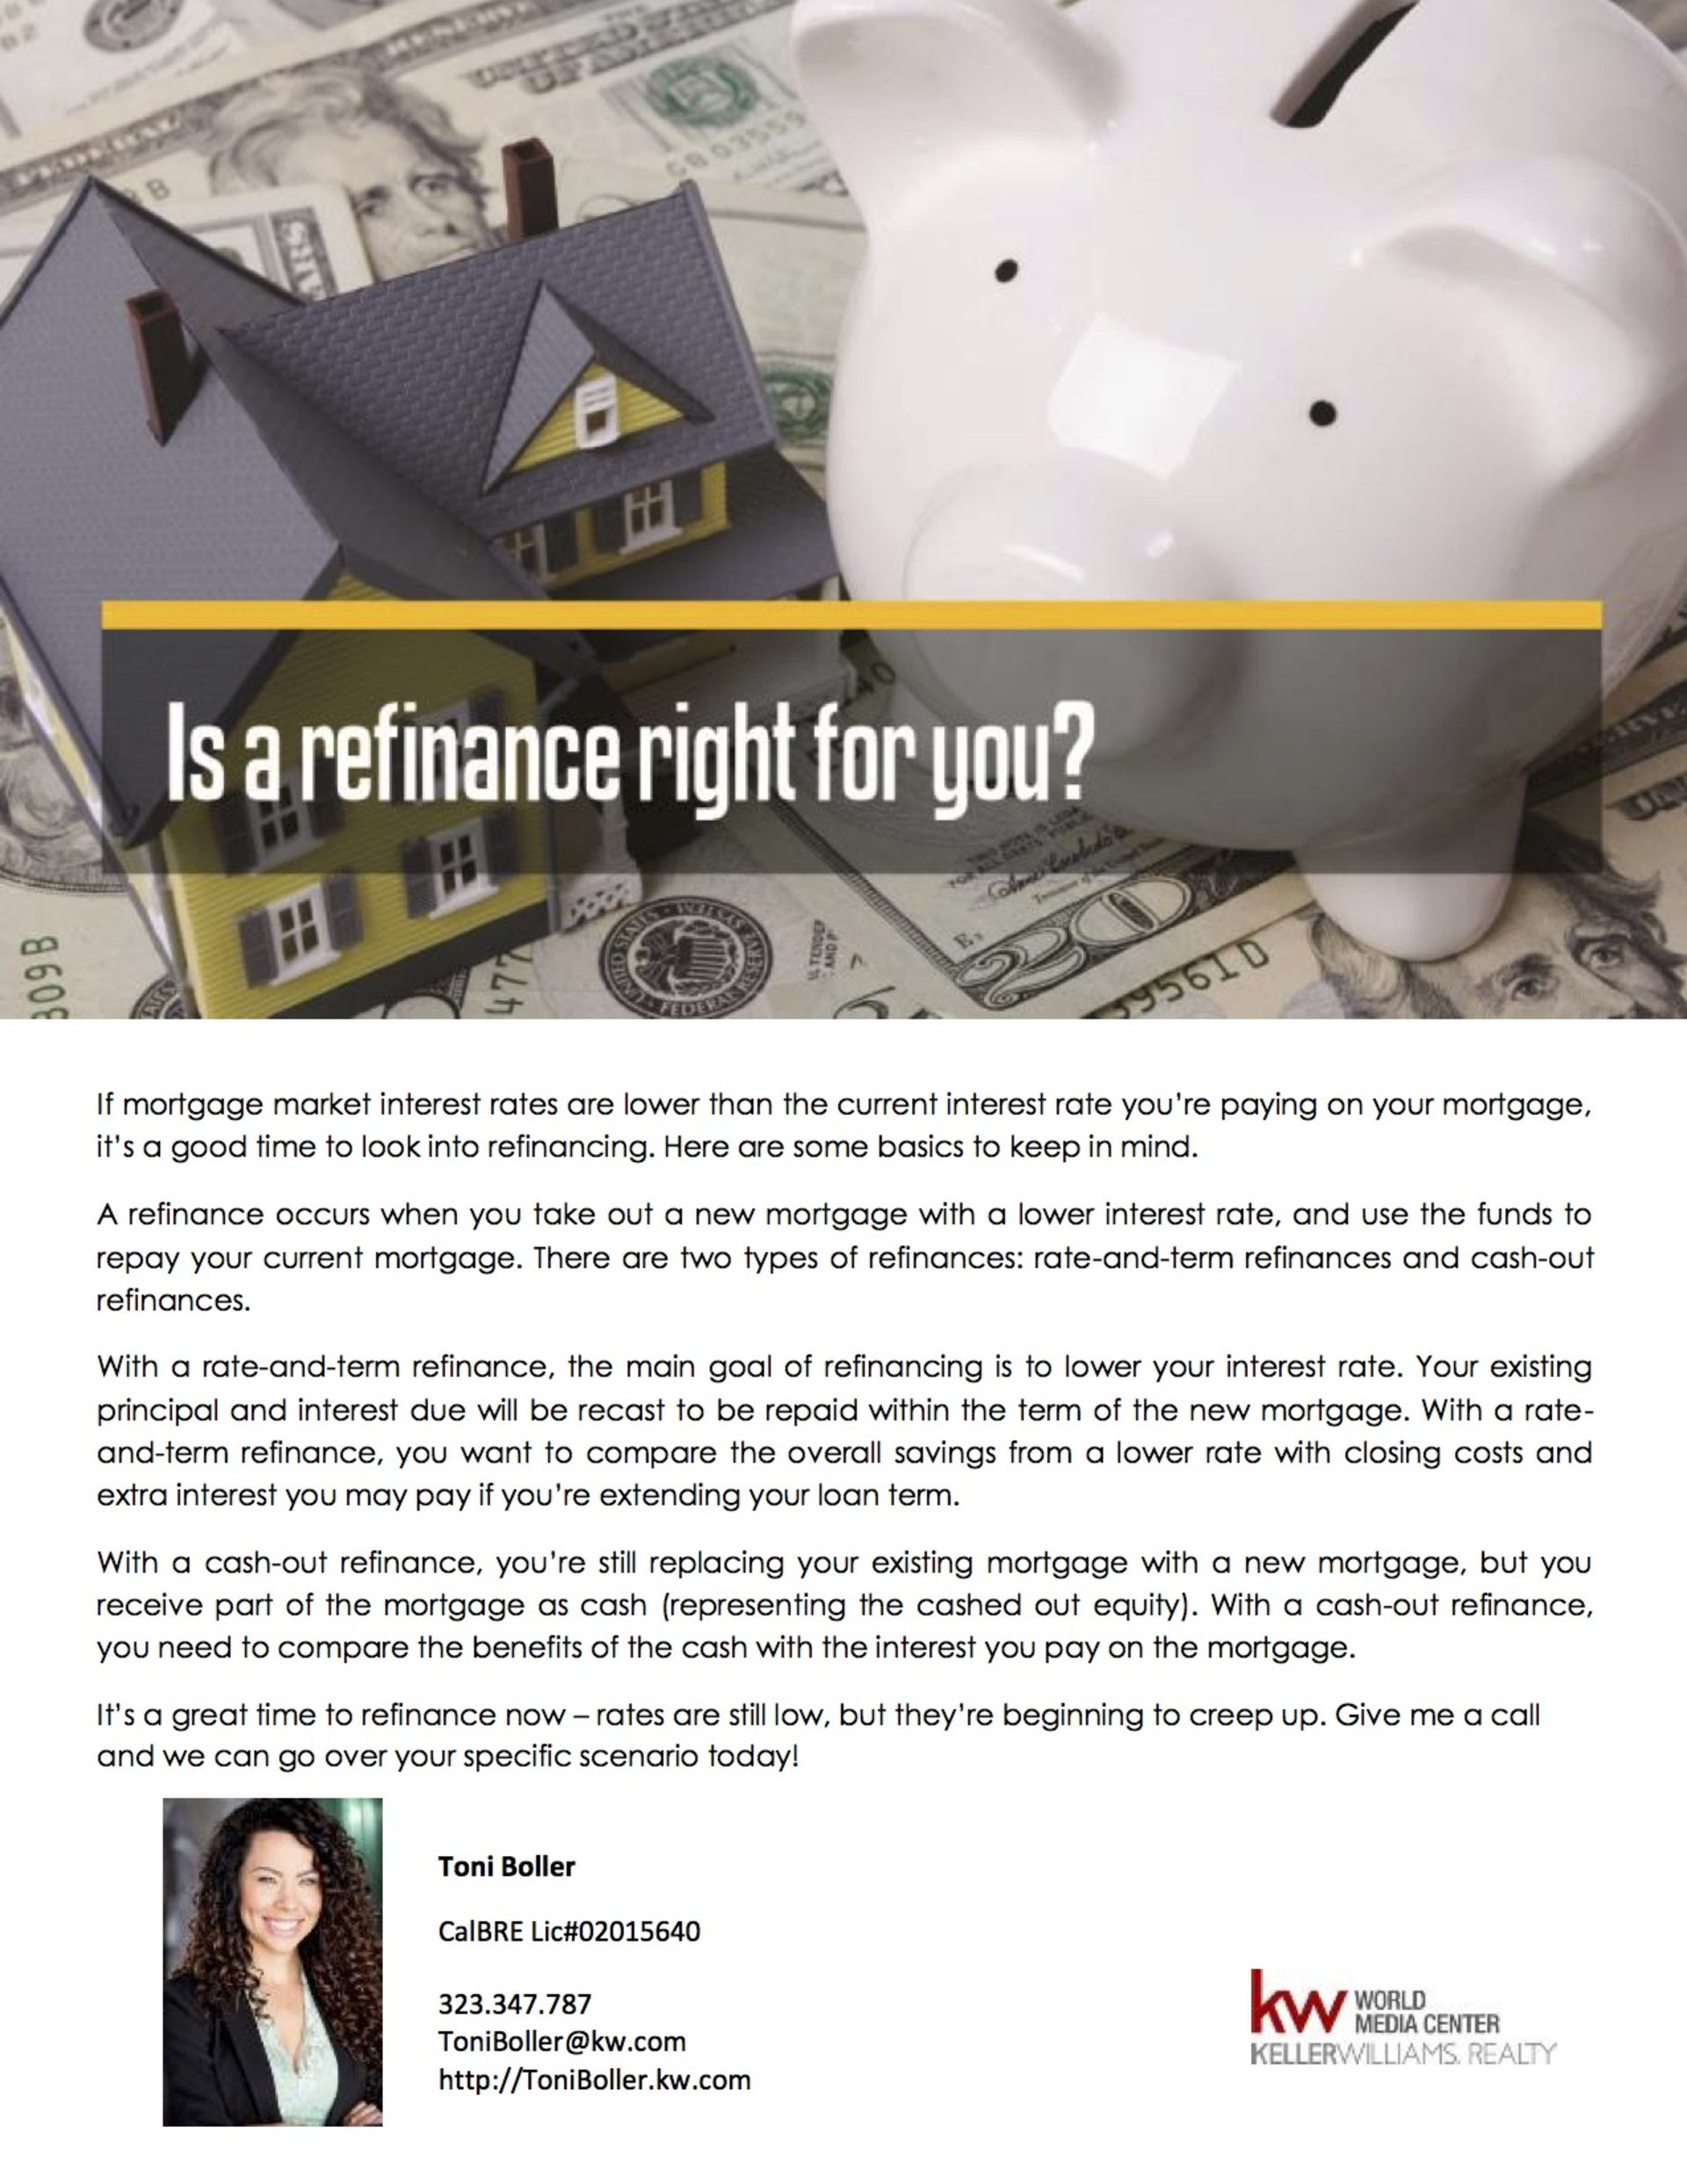 Is Refinancing Right for You?